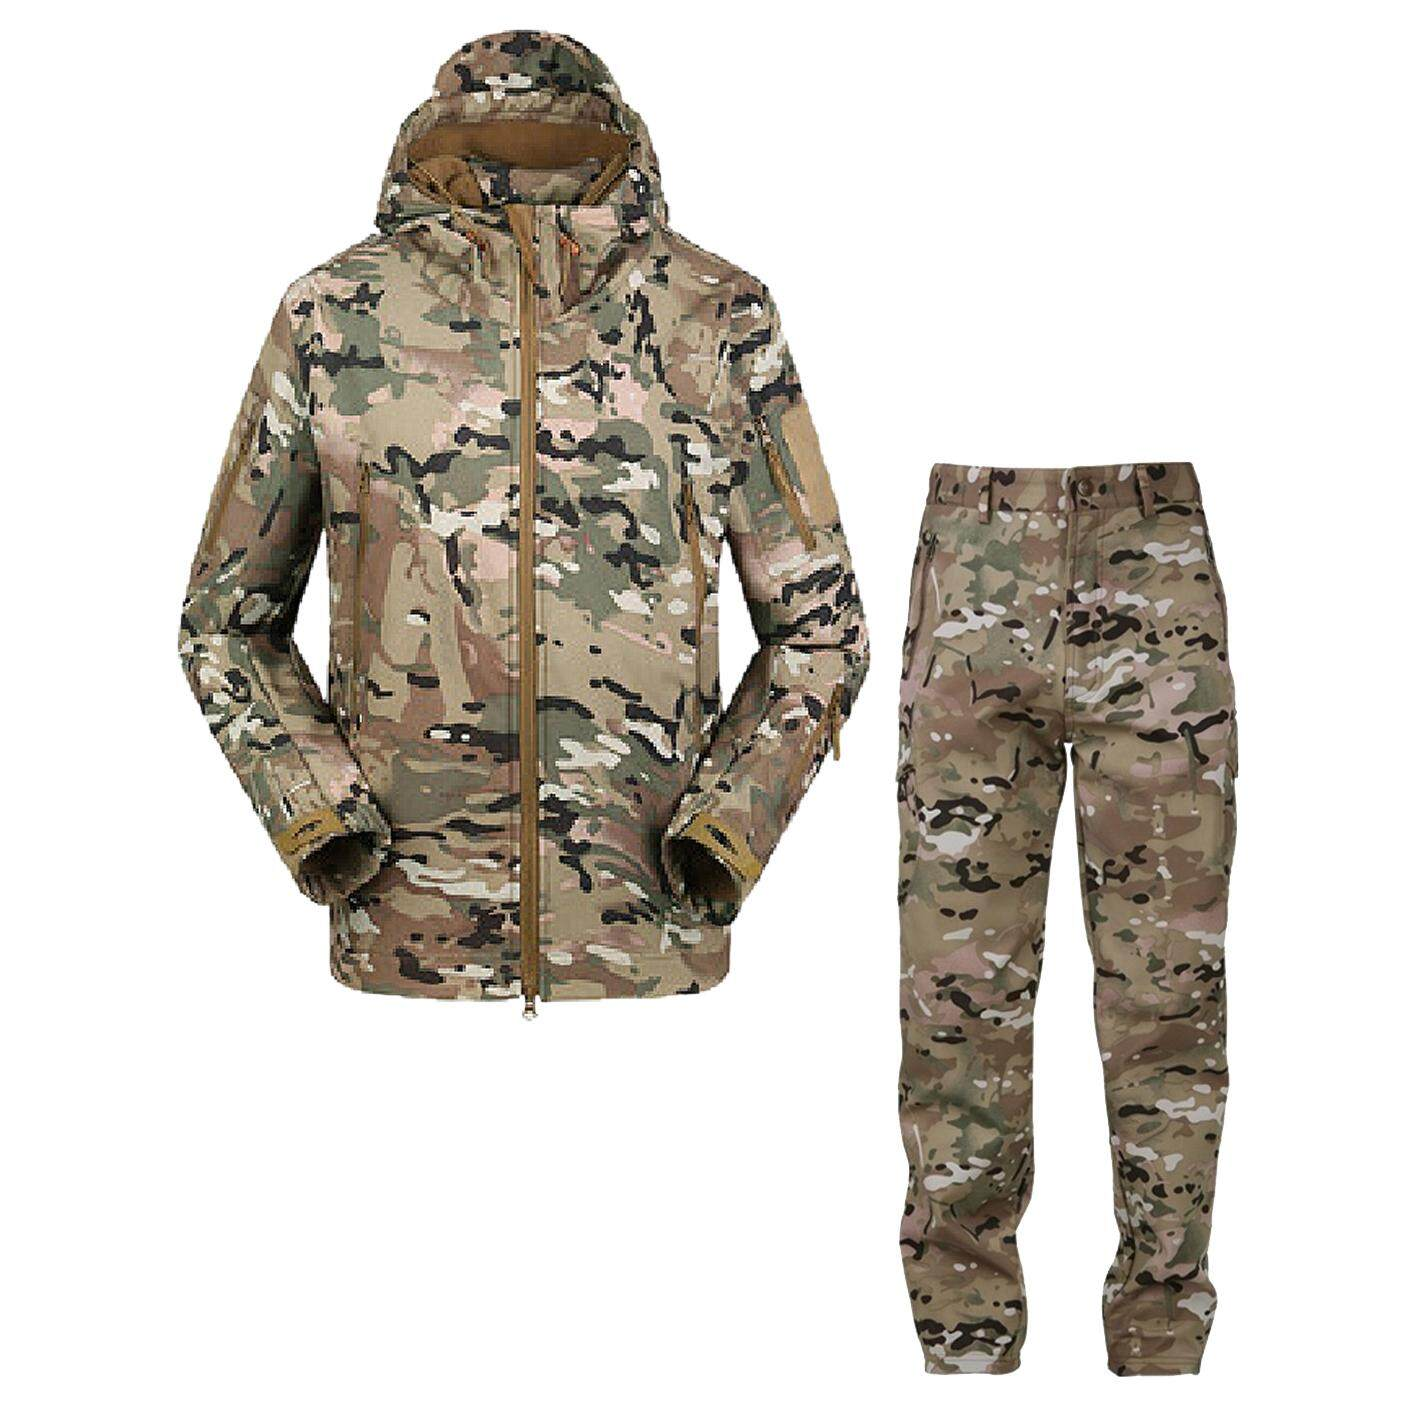 Buy Sell Cheapest Cp Jacket Best Quality Product Deals Torch Tshirt Women Tosca Hijau Xl Tactical Softshell Camouflage Outdoors Sport Waterproof Hunting Clothes Set Pants Xxl